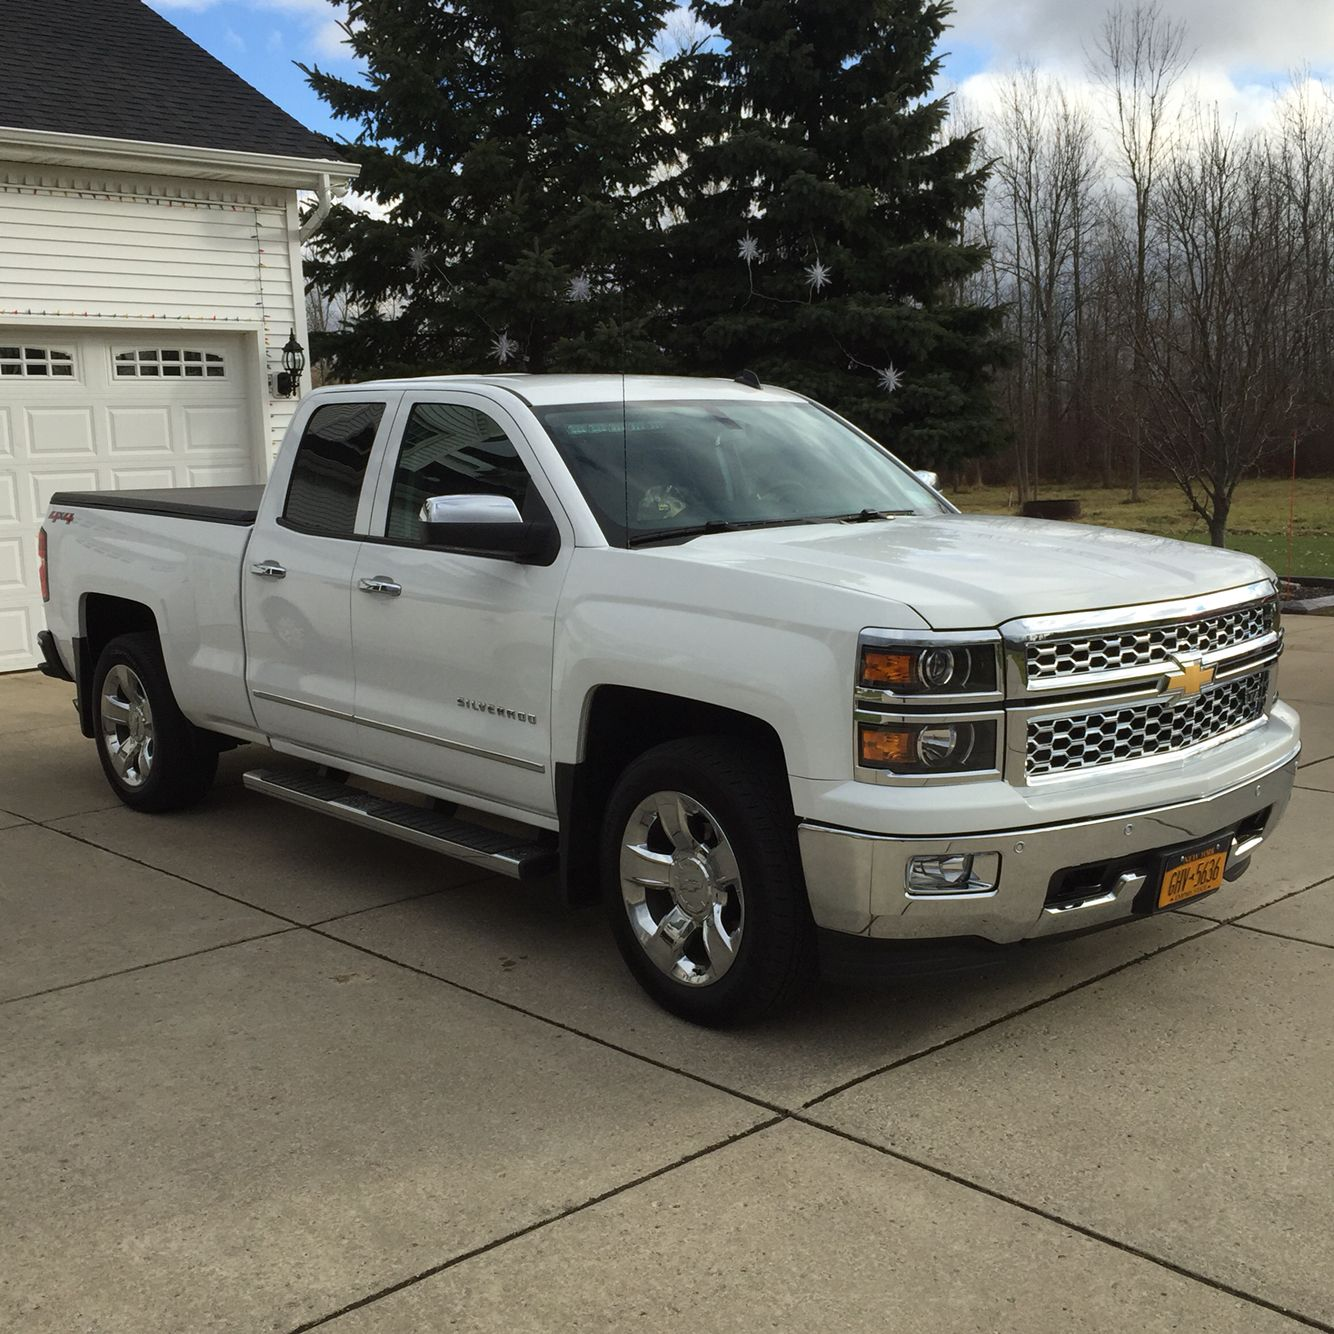 My new sexy white chevy silverado 1500 ltz double cab with chrome accents and 20